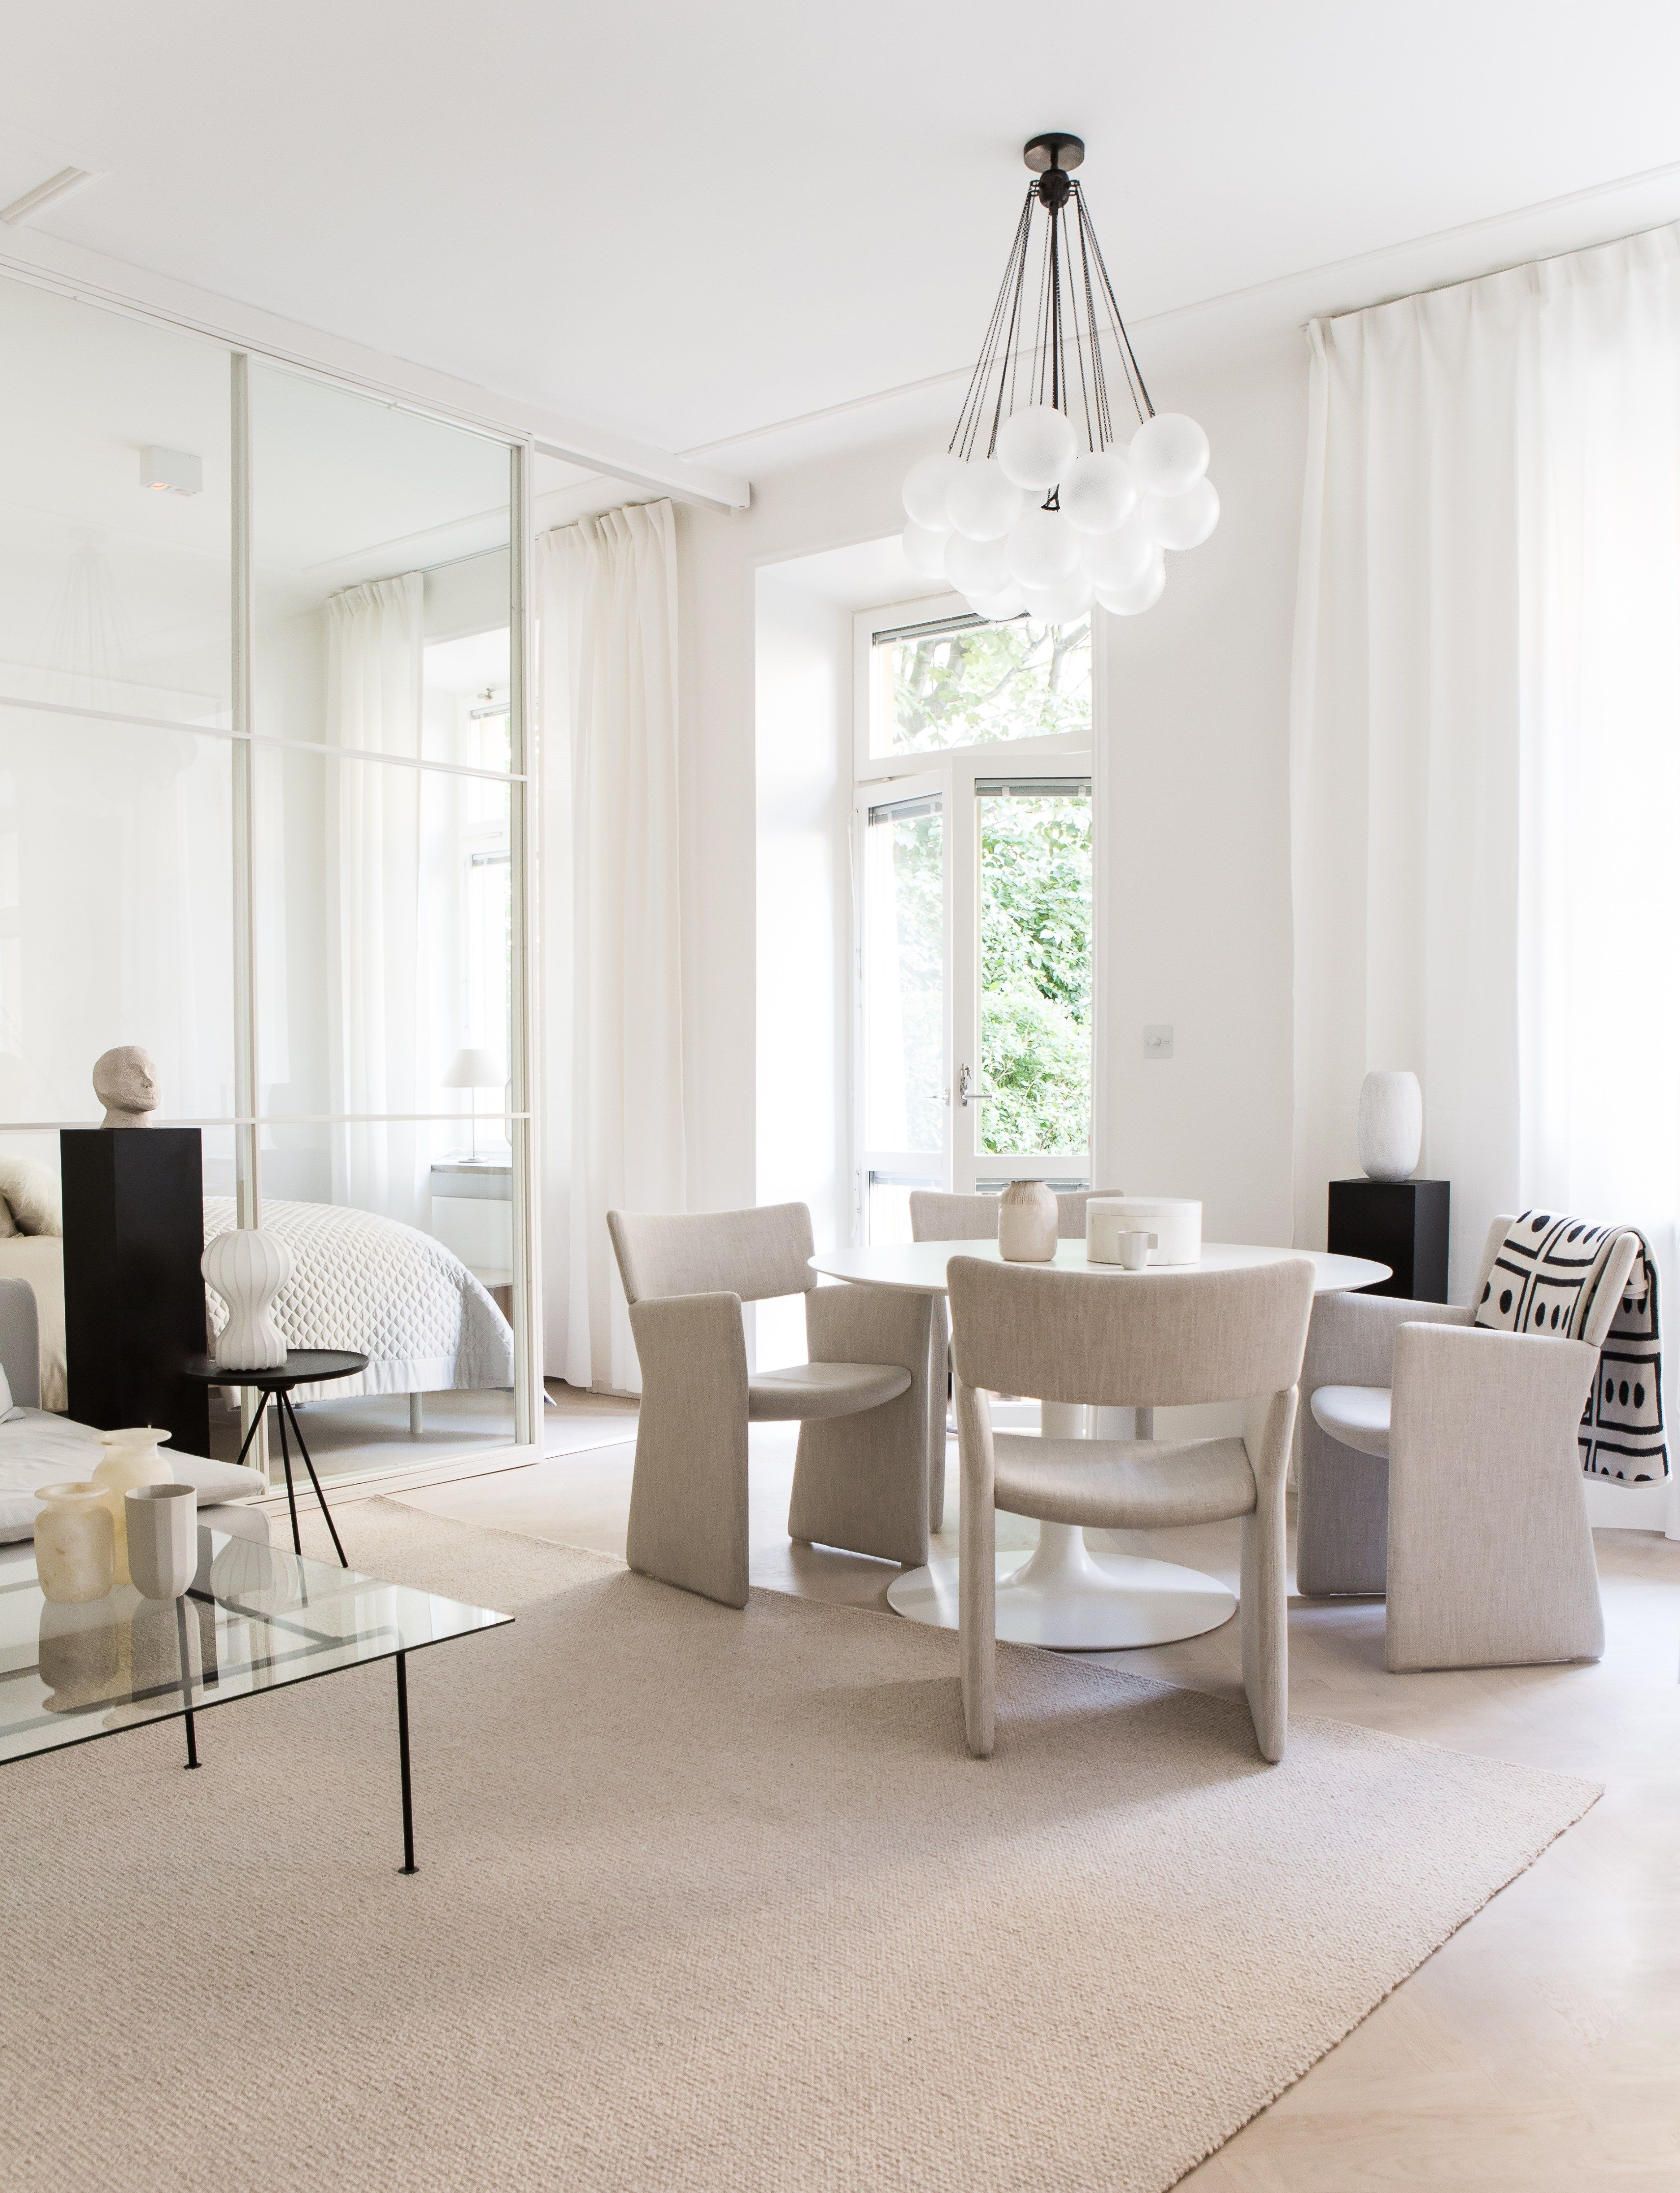 Home In Beige, Nudes And White   Via Coco Lapine Design Blog